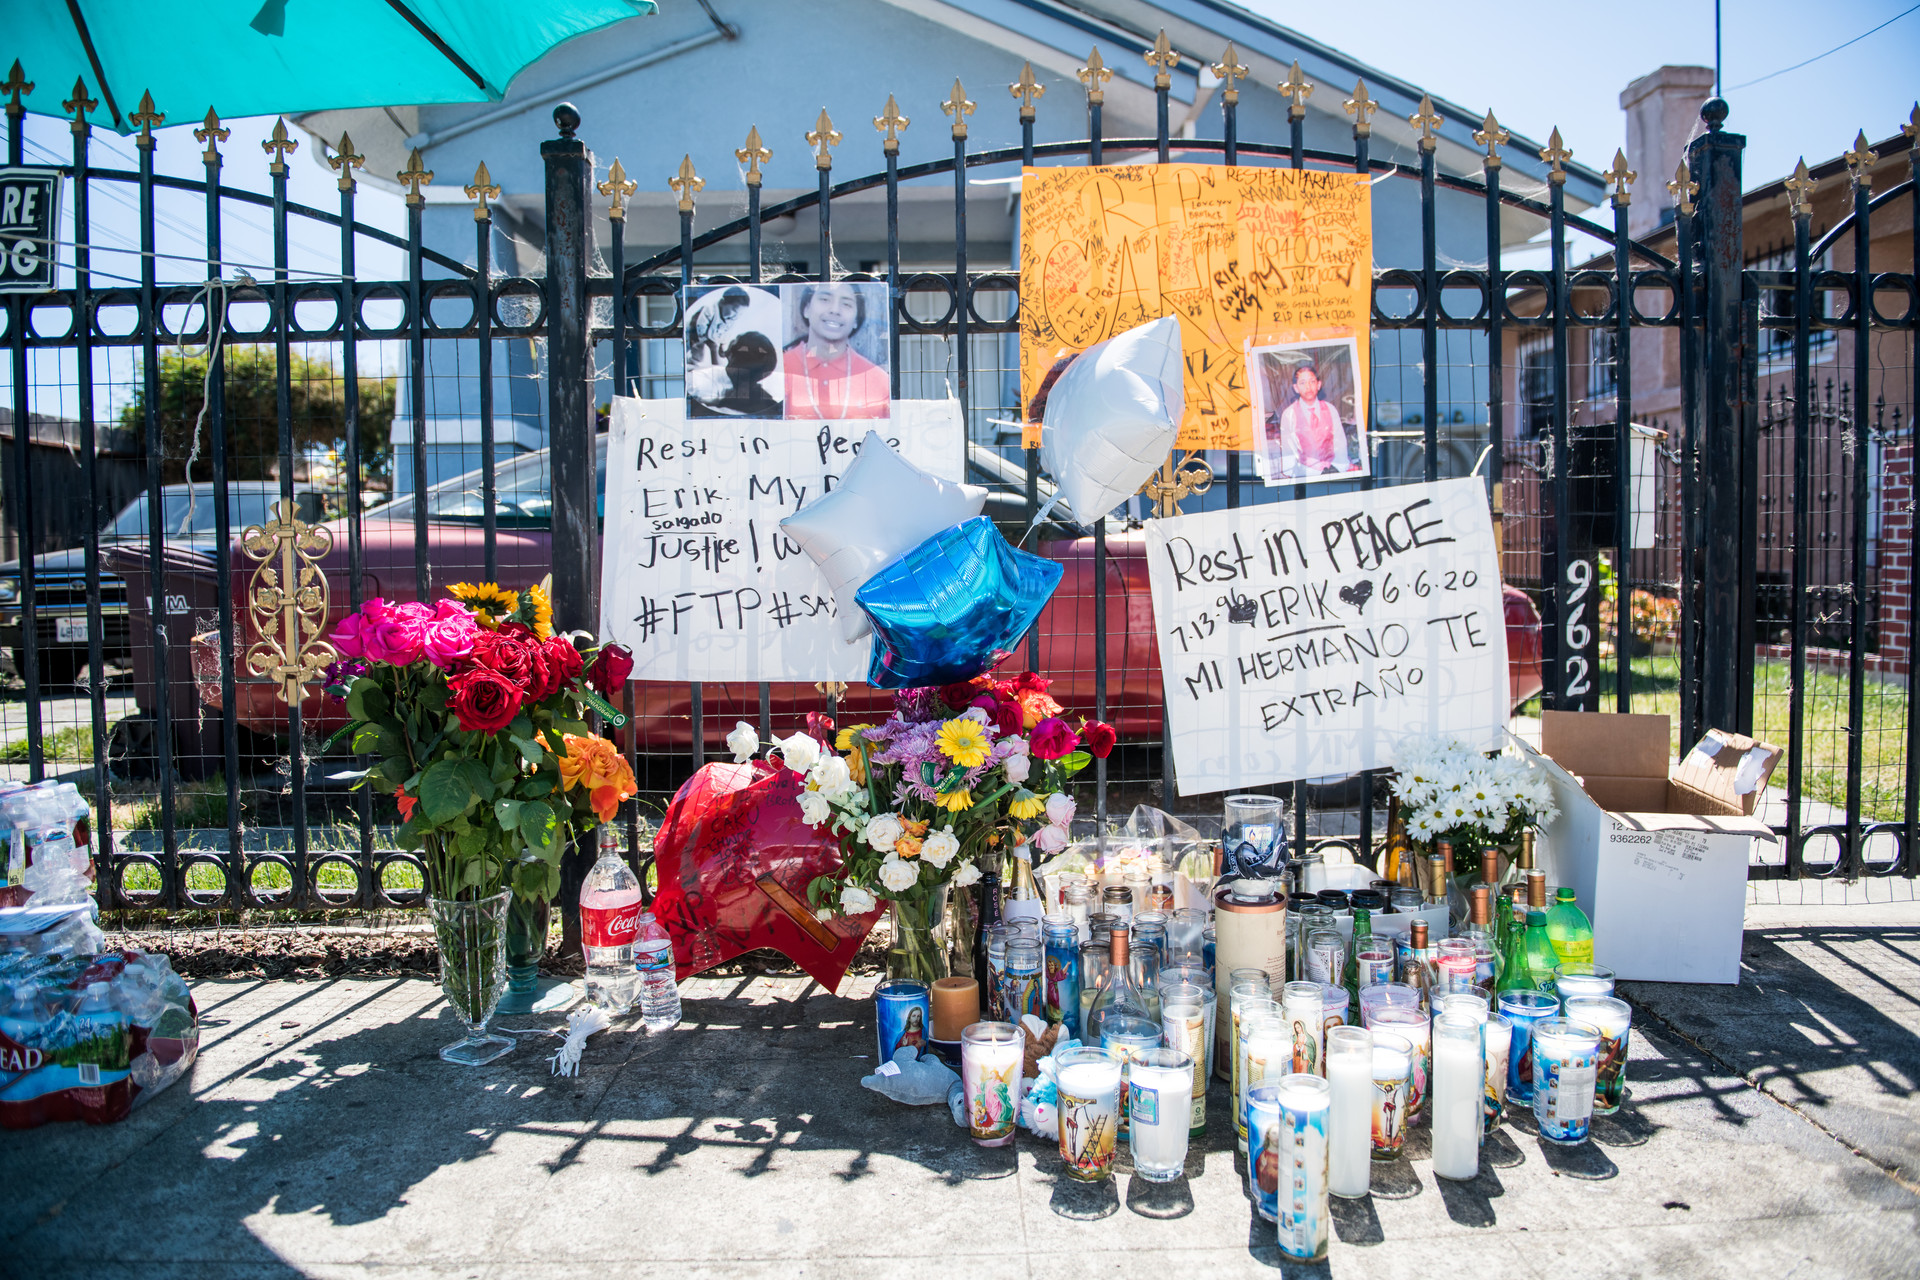 Mourners contributed to a memorial for Erik Salgado in East Oakland on June 8. Salgado was shot and killed by California Highway Patrol officers on Saturday June 6.